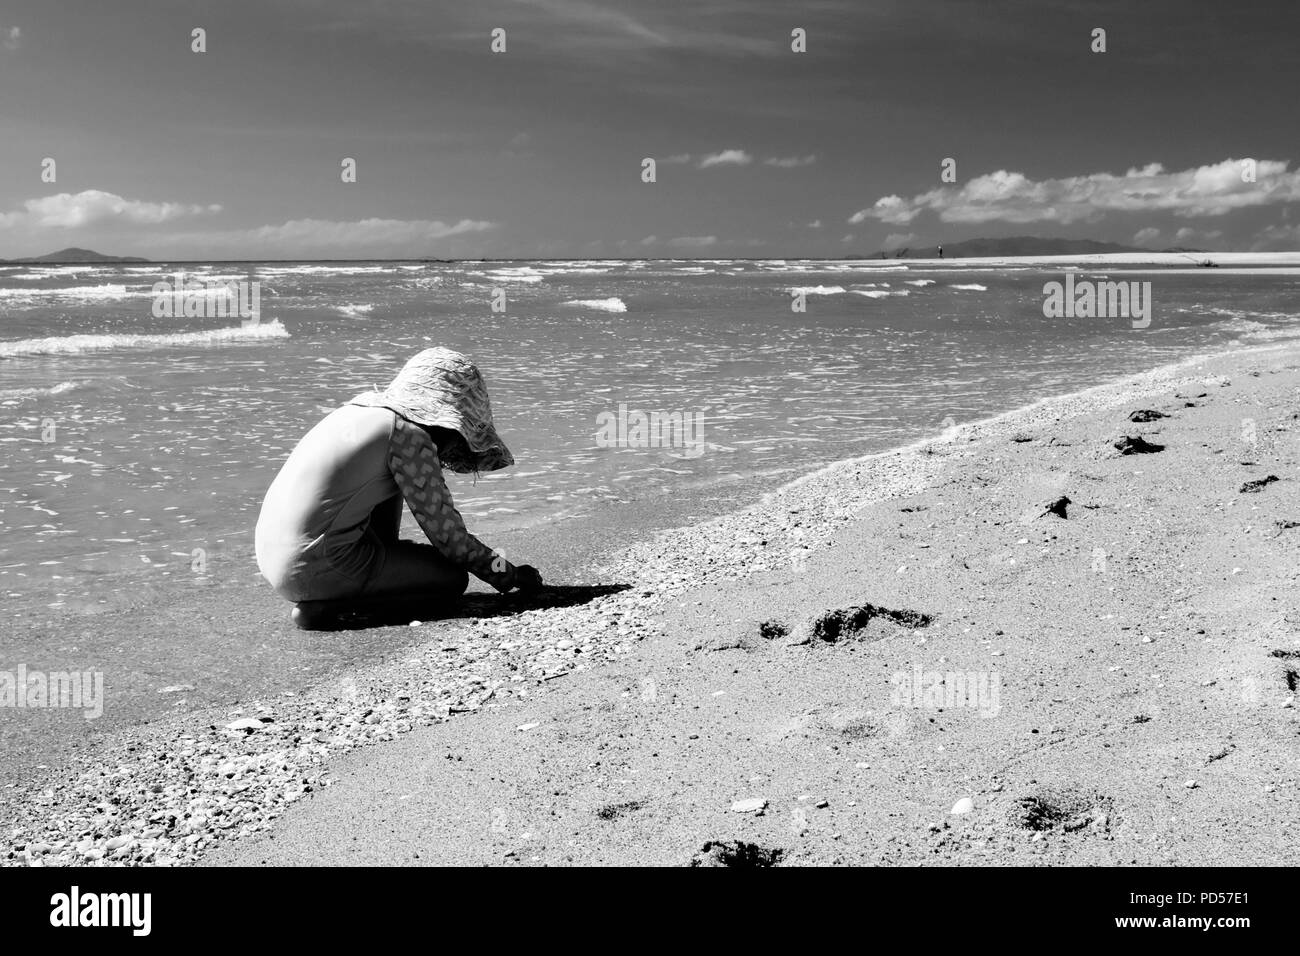 Young child playing on a deserted tropical beach, Toomulla QLD, Australia - Stock Image